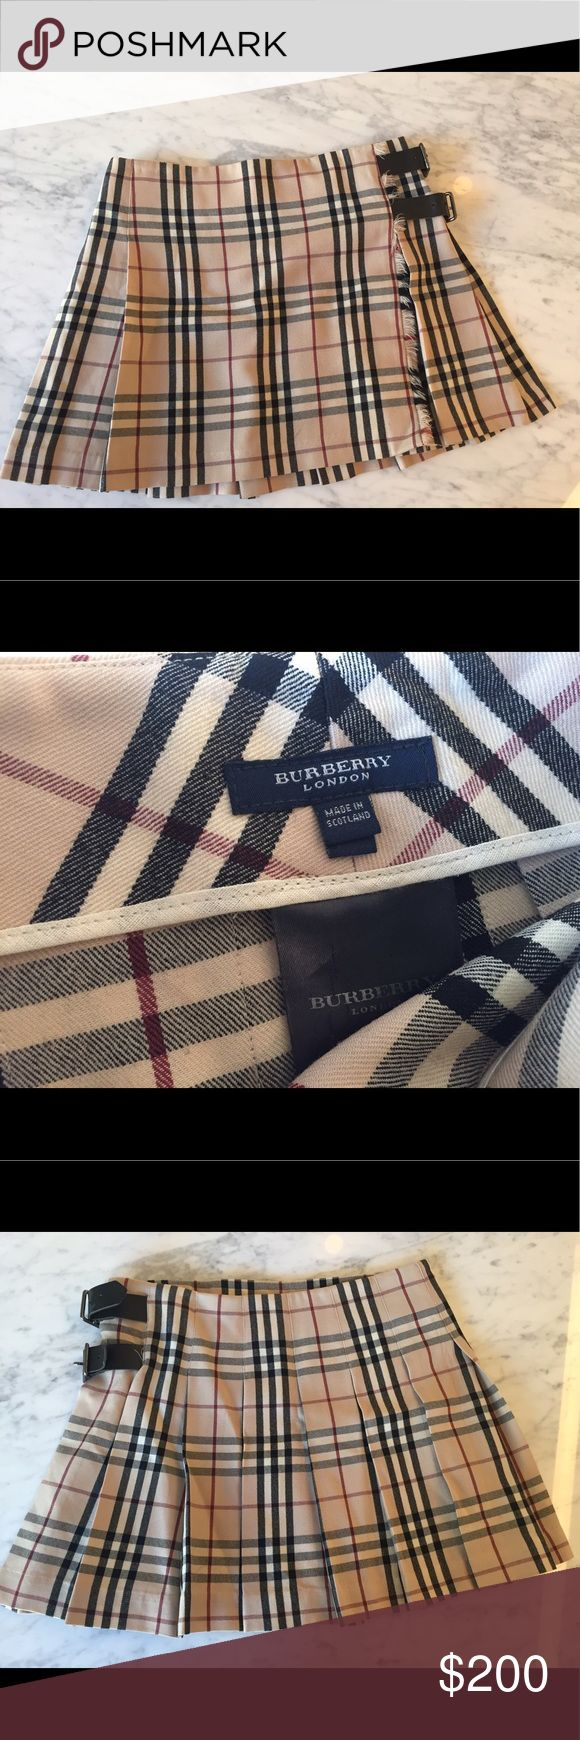 Burberry skirt UK size 12 (US 10). However, the leather buckles are adjustable and could fit a much smaller size as well. I am a US 0/2 and it is a little loose on me. Authentic Burberry. Bought 10 years ago but only worn a handful of times. Burberry Skirts